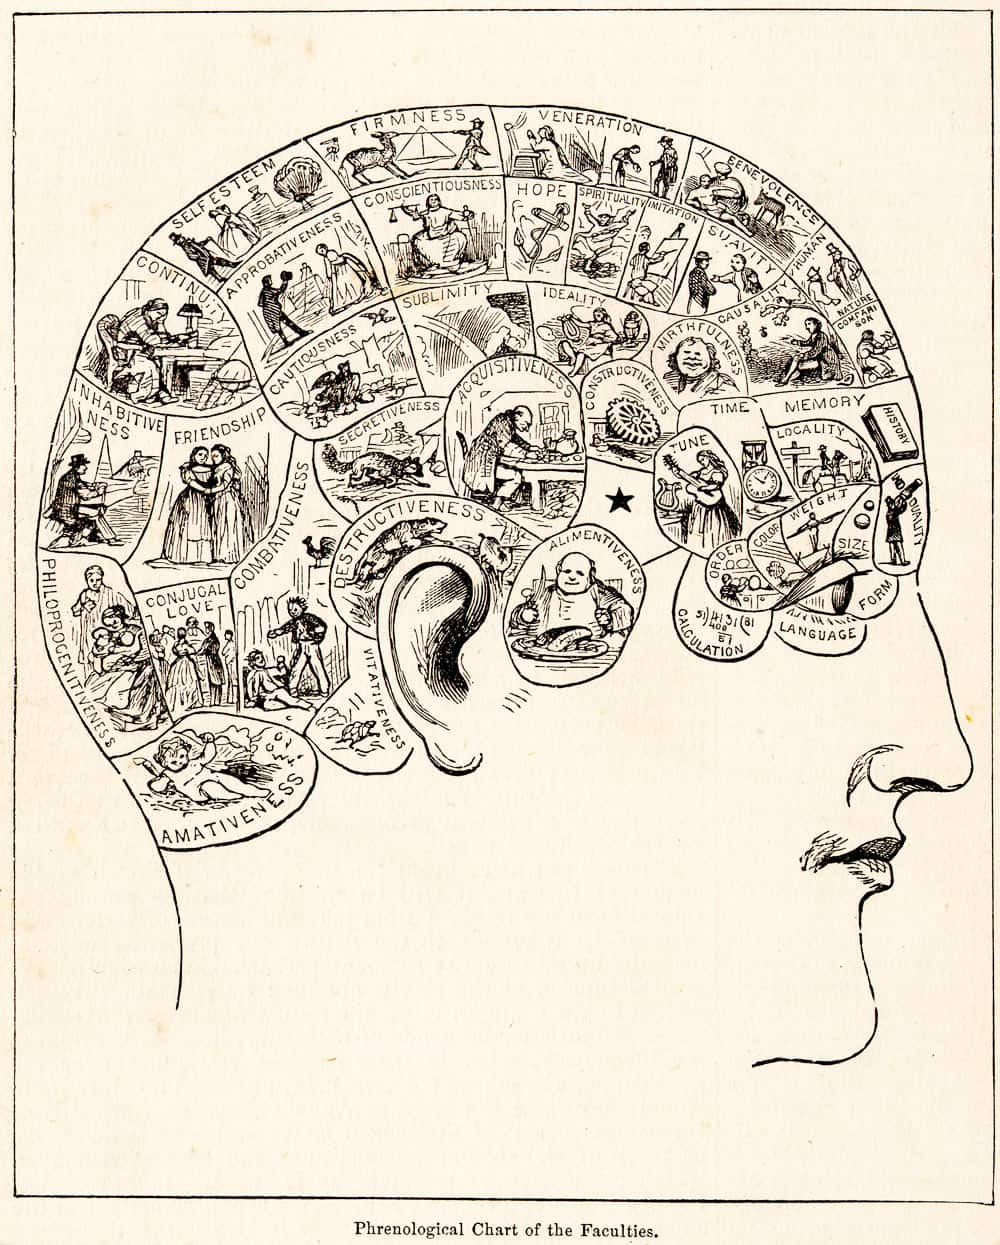 Peaple's Cyclopedia of Universal Knowledge: Phrenological Chart of the Faculties (1883)